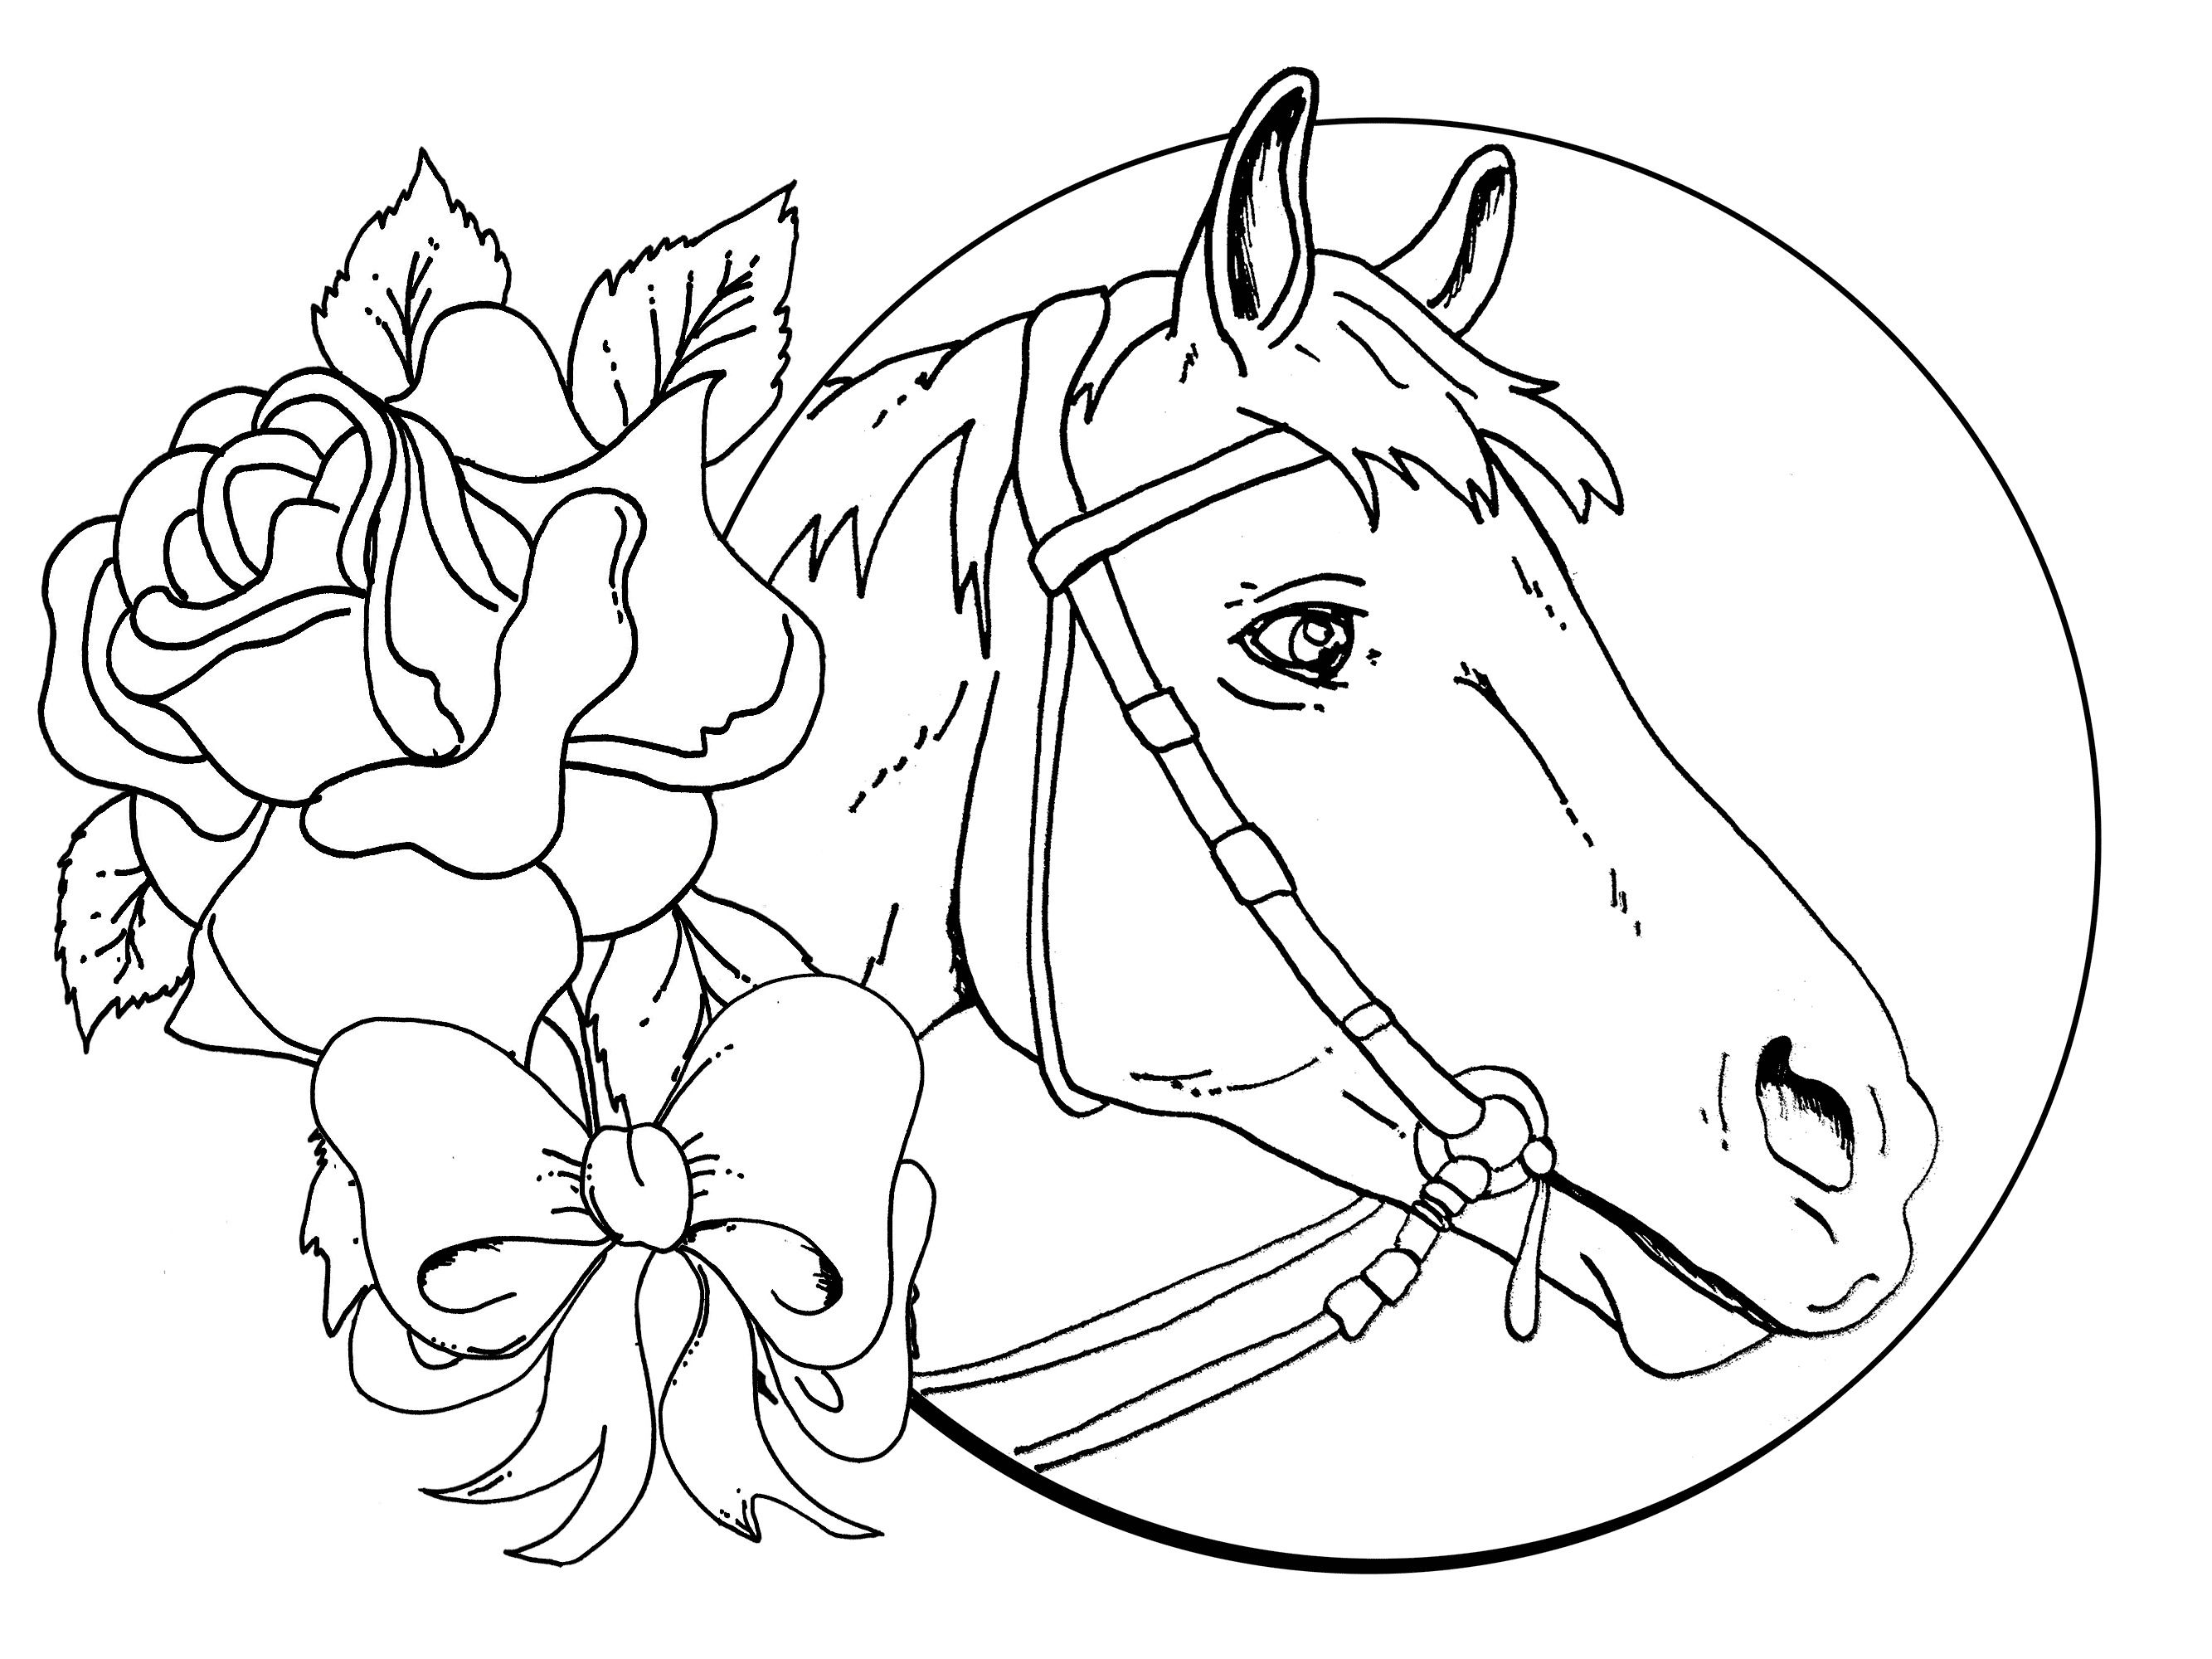 horse coloring image horse coloring pages for kindergarten learning printable horse image coloring